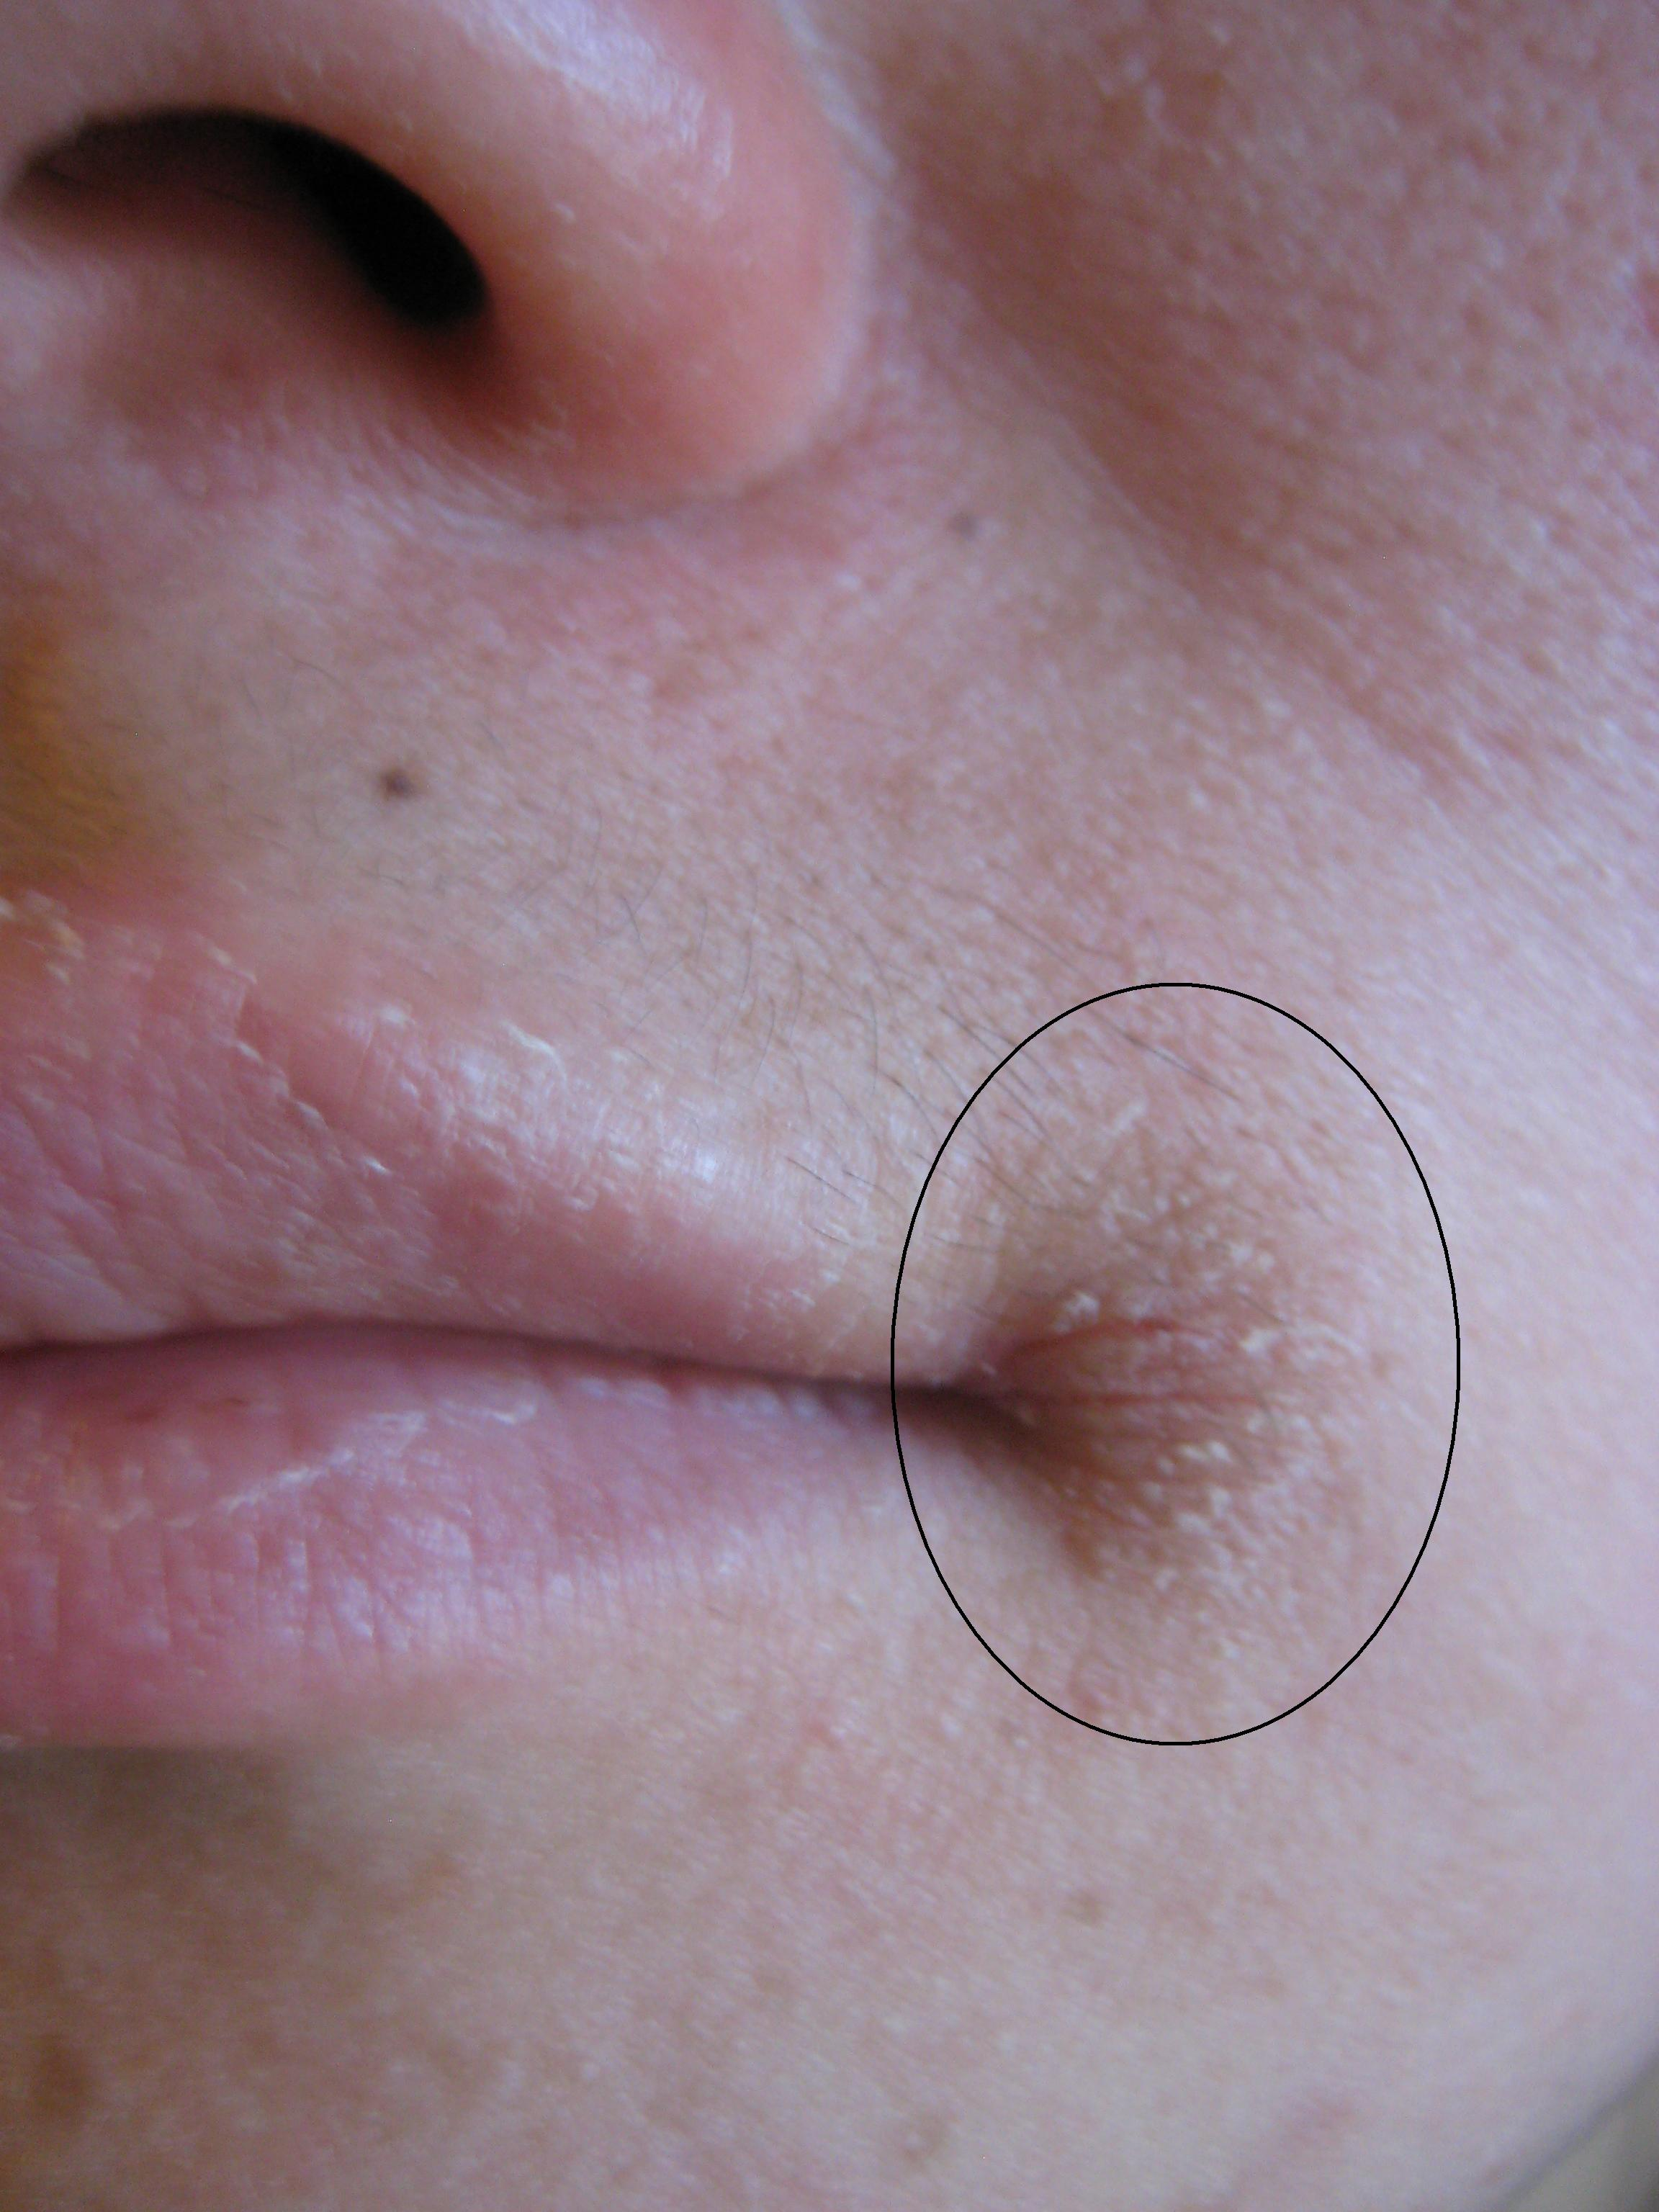 File:Angular Cheilitis.JPG - Wikimedia Commons